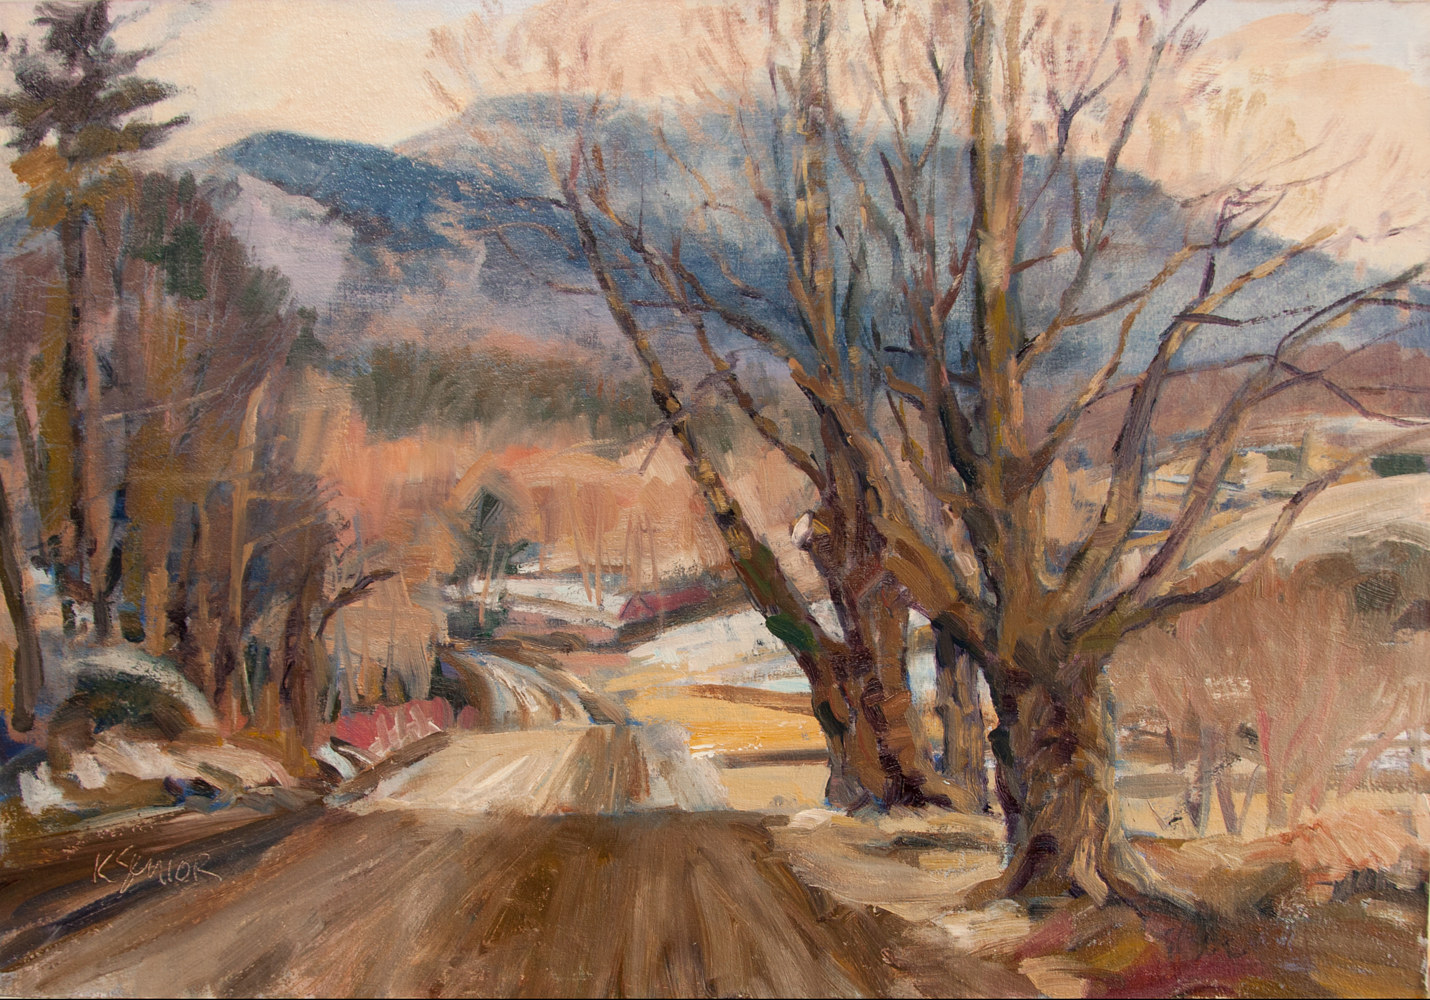 Oil painting Bryce Road by Kimberley Senior